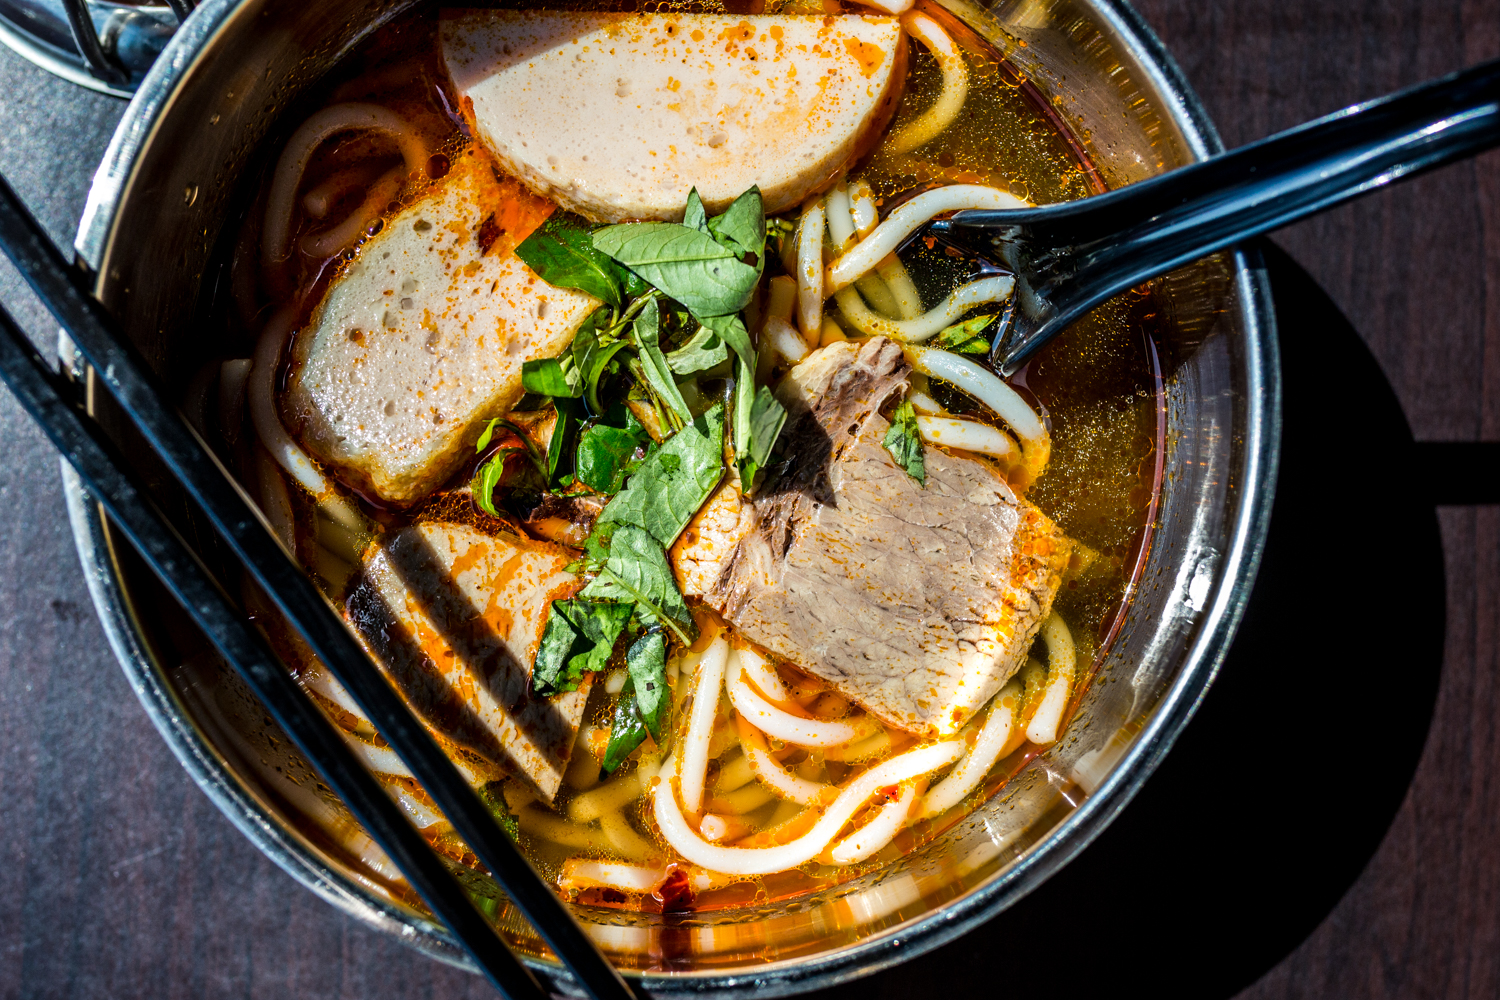 Spicy Beef Noodle Soup: rice noodles in a spicy lemongrass broth with beef slices, Vietnamese ham, soft tendon, cilantro, green onions, and white onions / Image: Catherine Viox // Published: 9.28.19